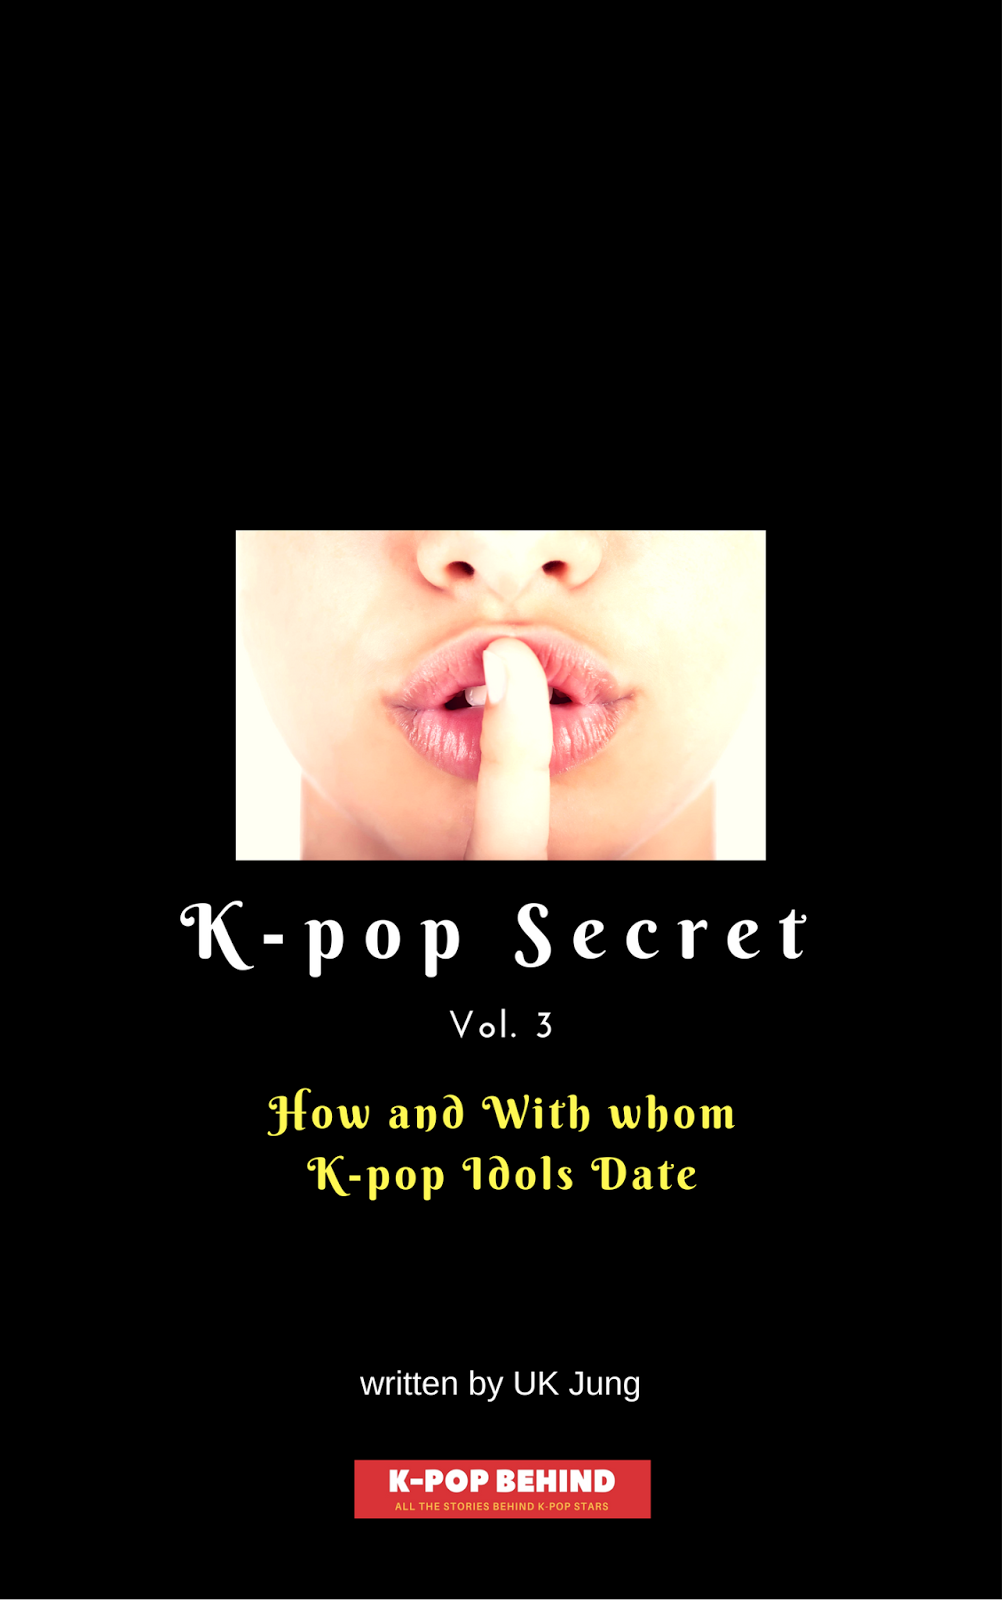 Kpop stars secretly dating